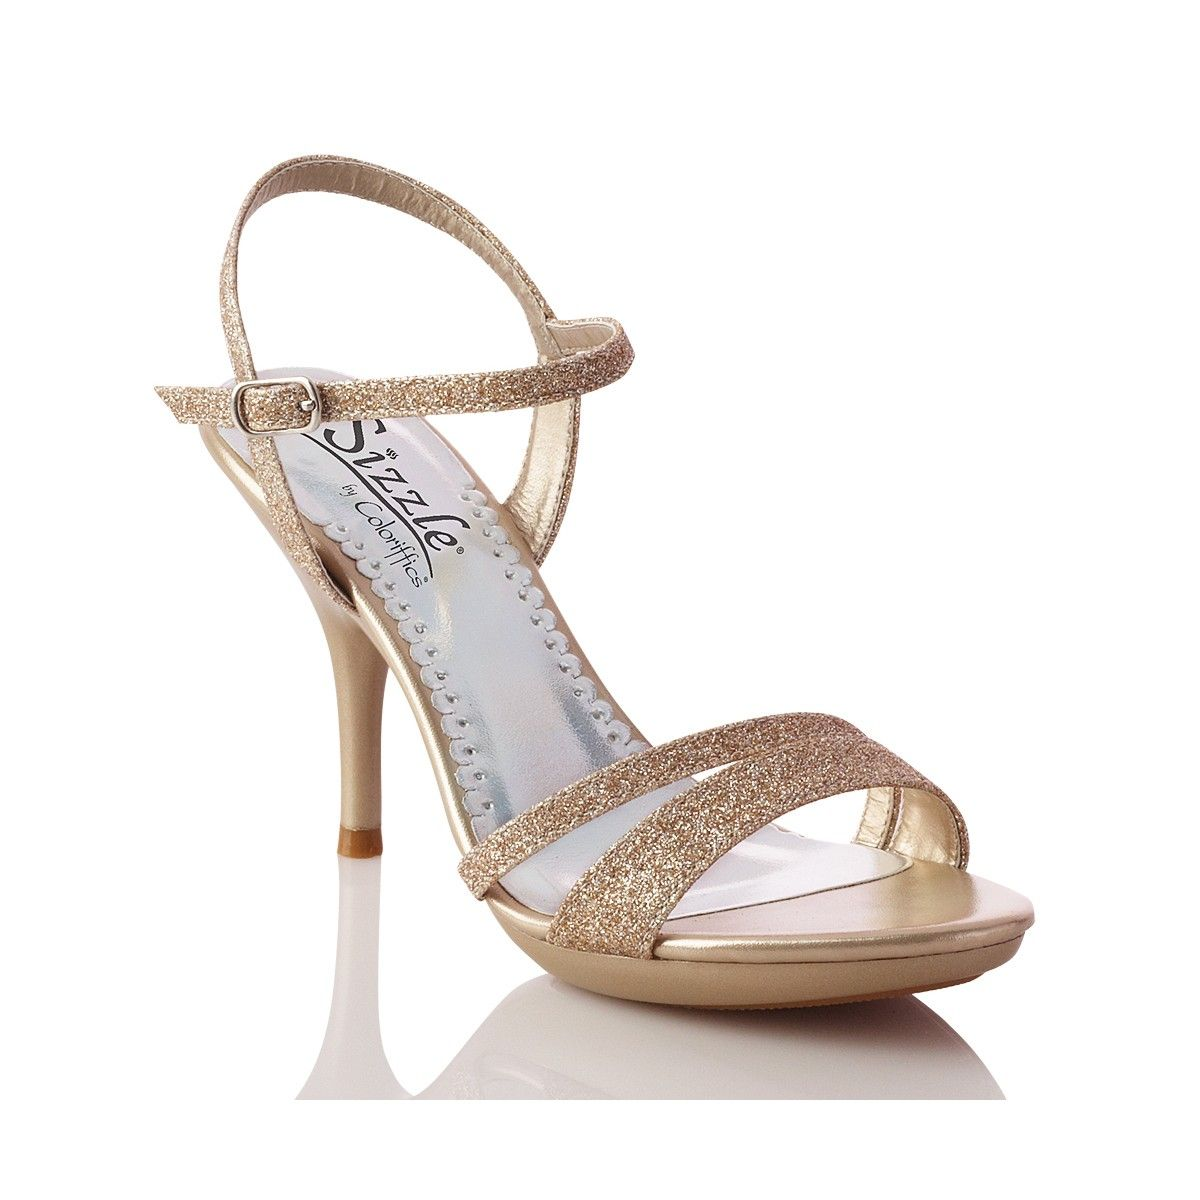 These shoes are great evening gown shoes - no chunky platform to ...